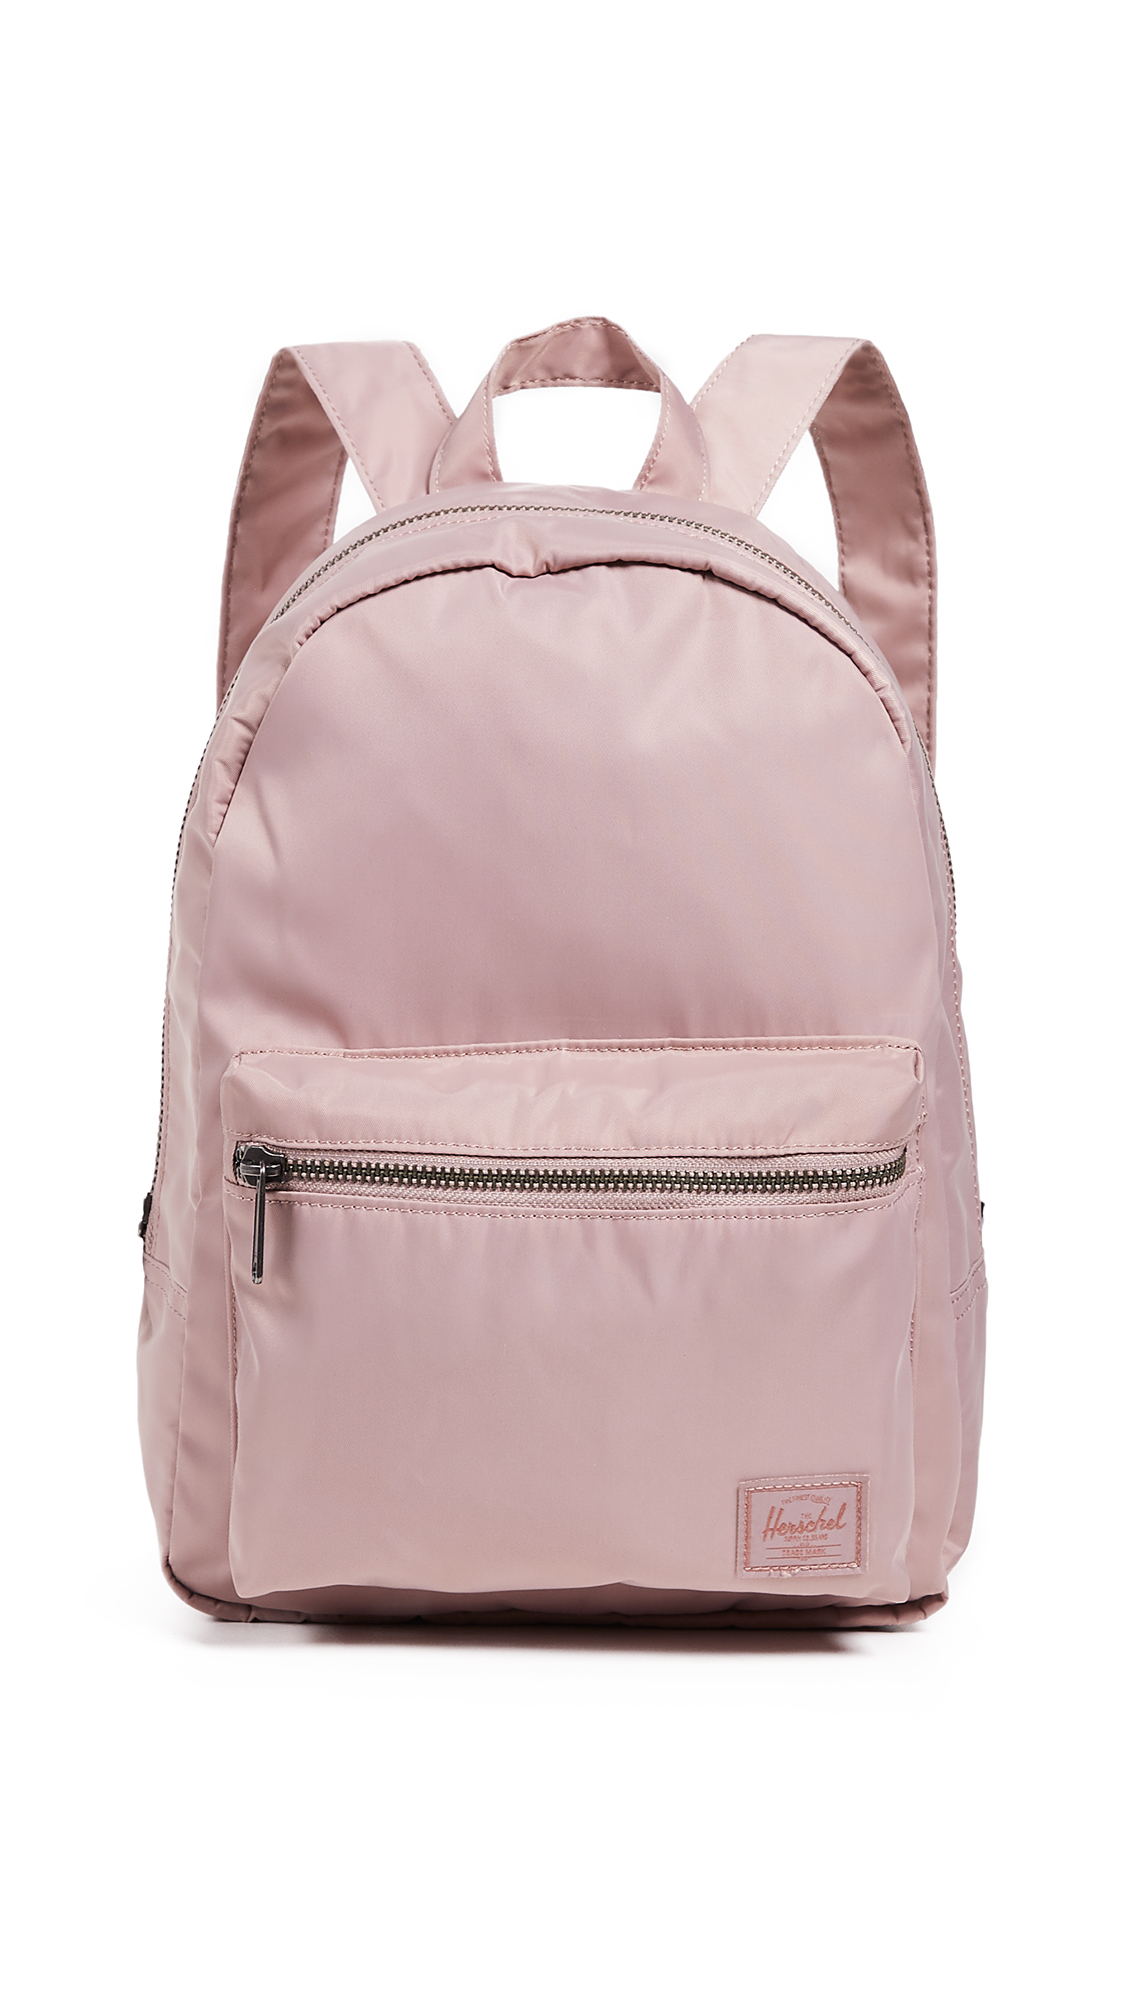 Flight Satin Grove X Small Backpack in Ash Rose